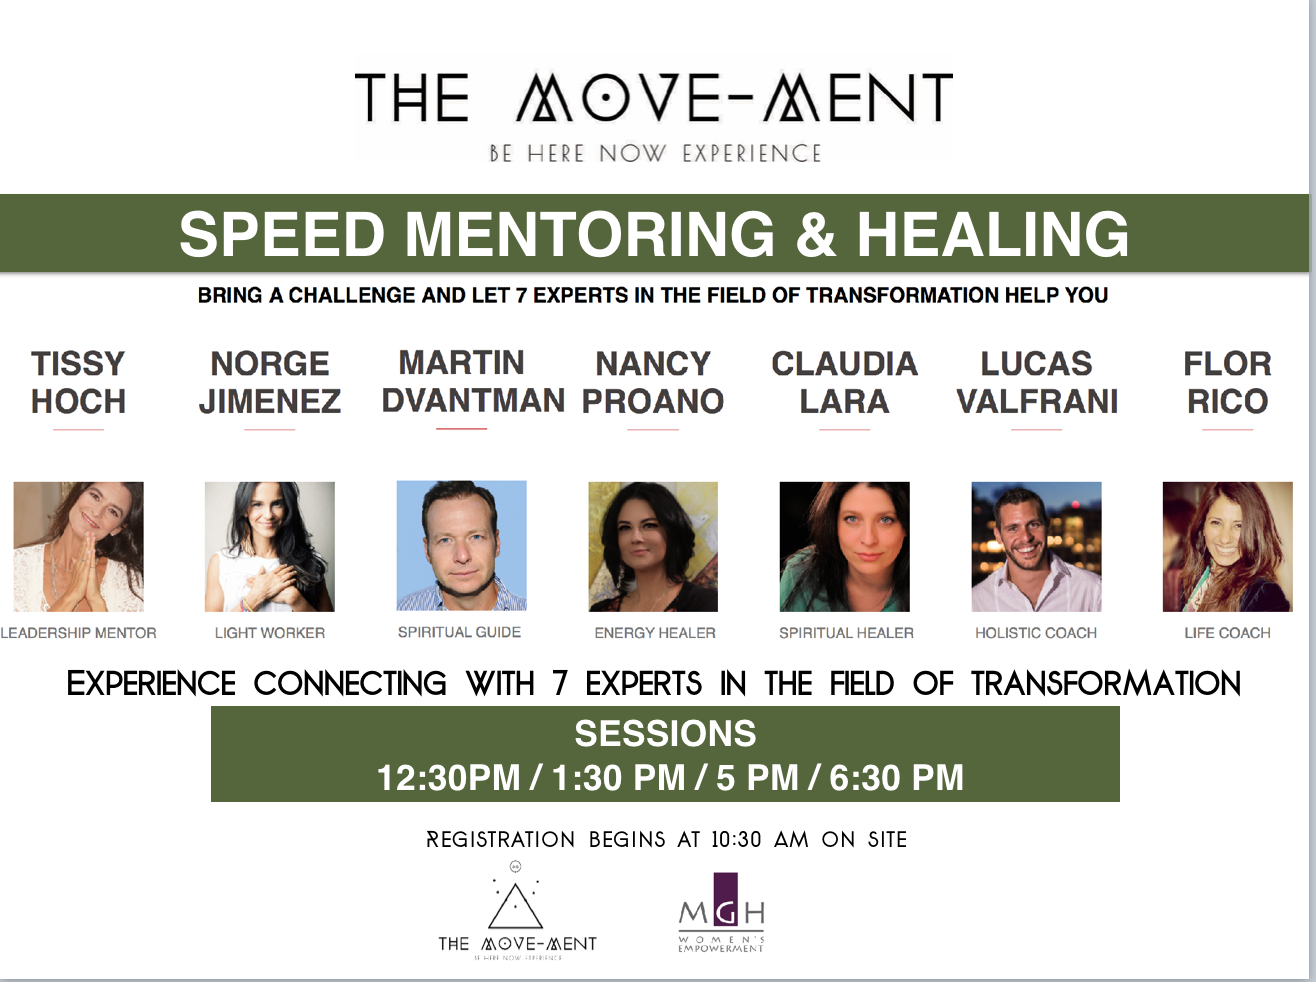 The Move-ment Be Here Now Experience healers